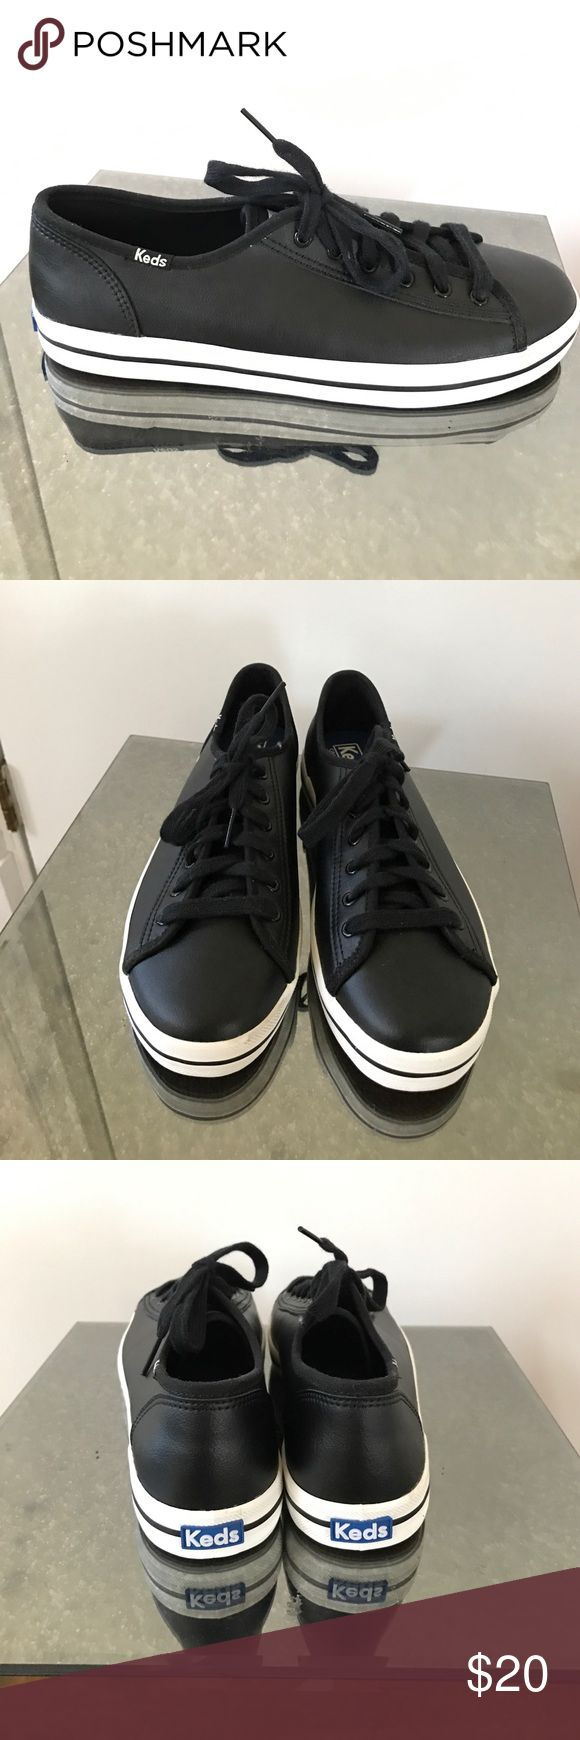 New black leather keds kickstart sneakers 8 Brand new keds in black smooth leather. Does not come with box. Keds Shoes Sneakers